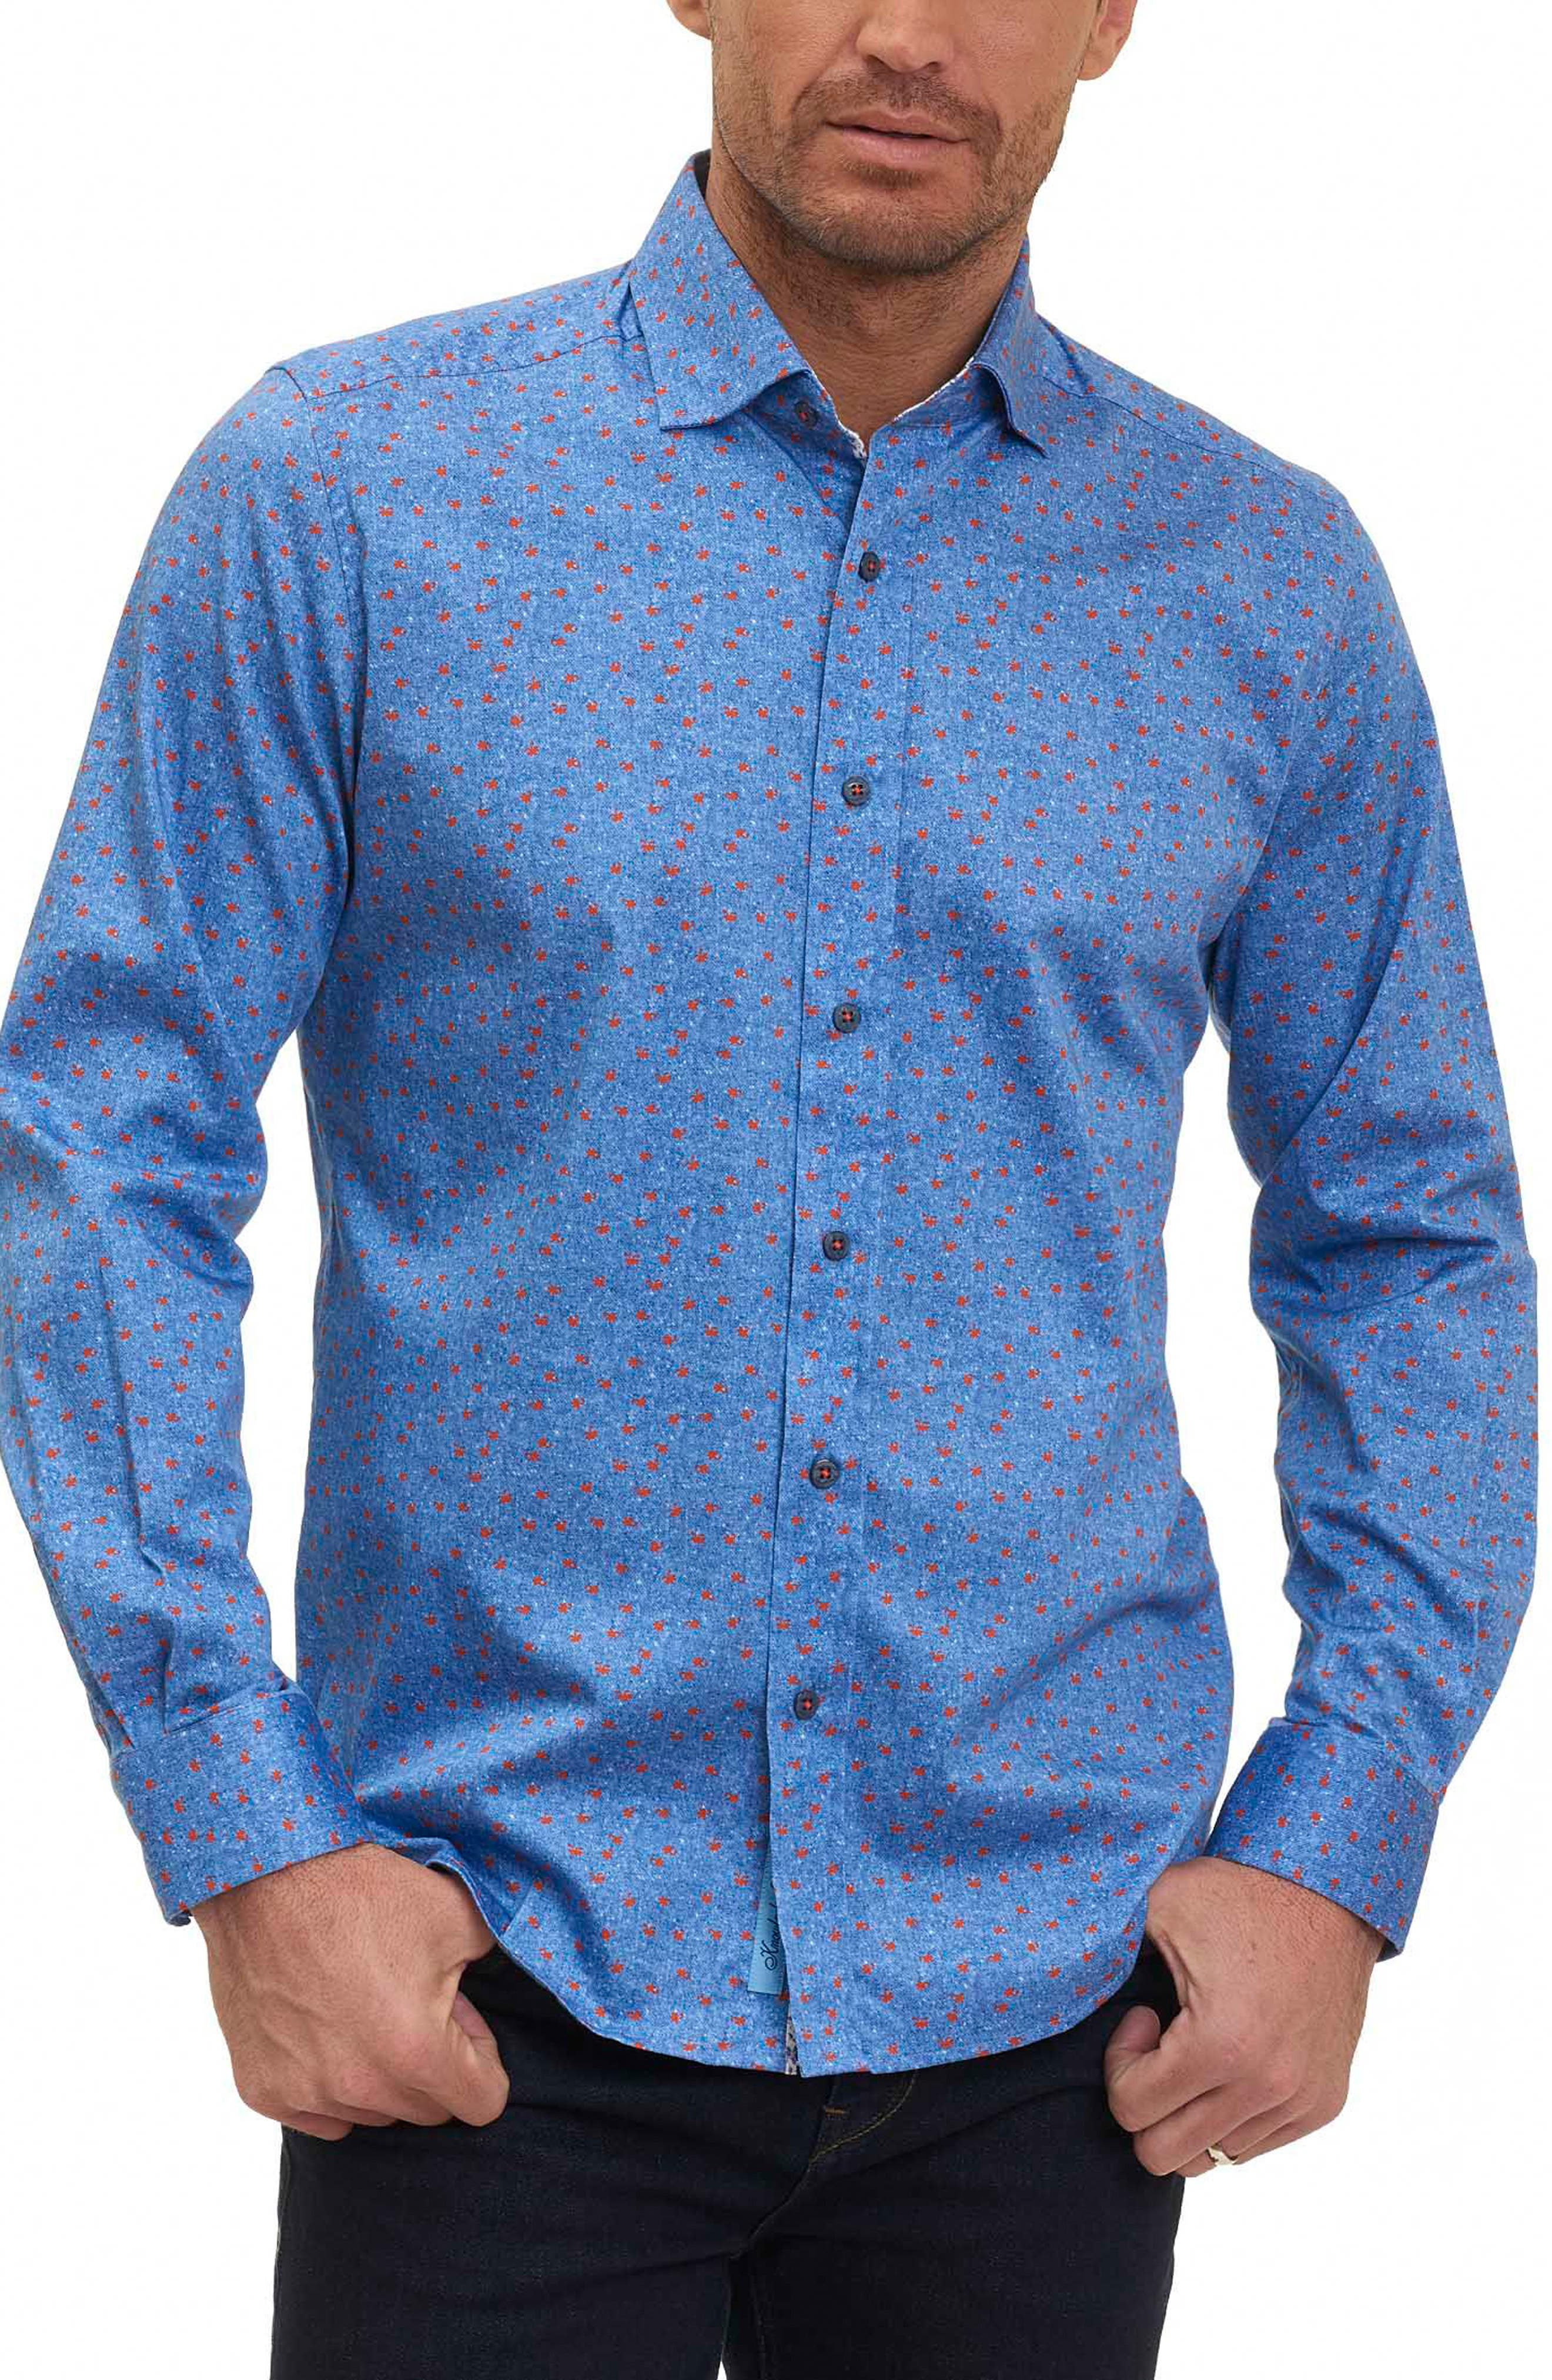 Zander Tailored Fit Sport Shirt,                         Main,                         color, Blue